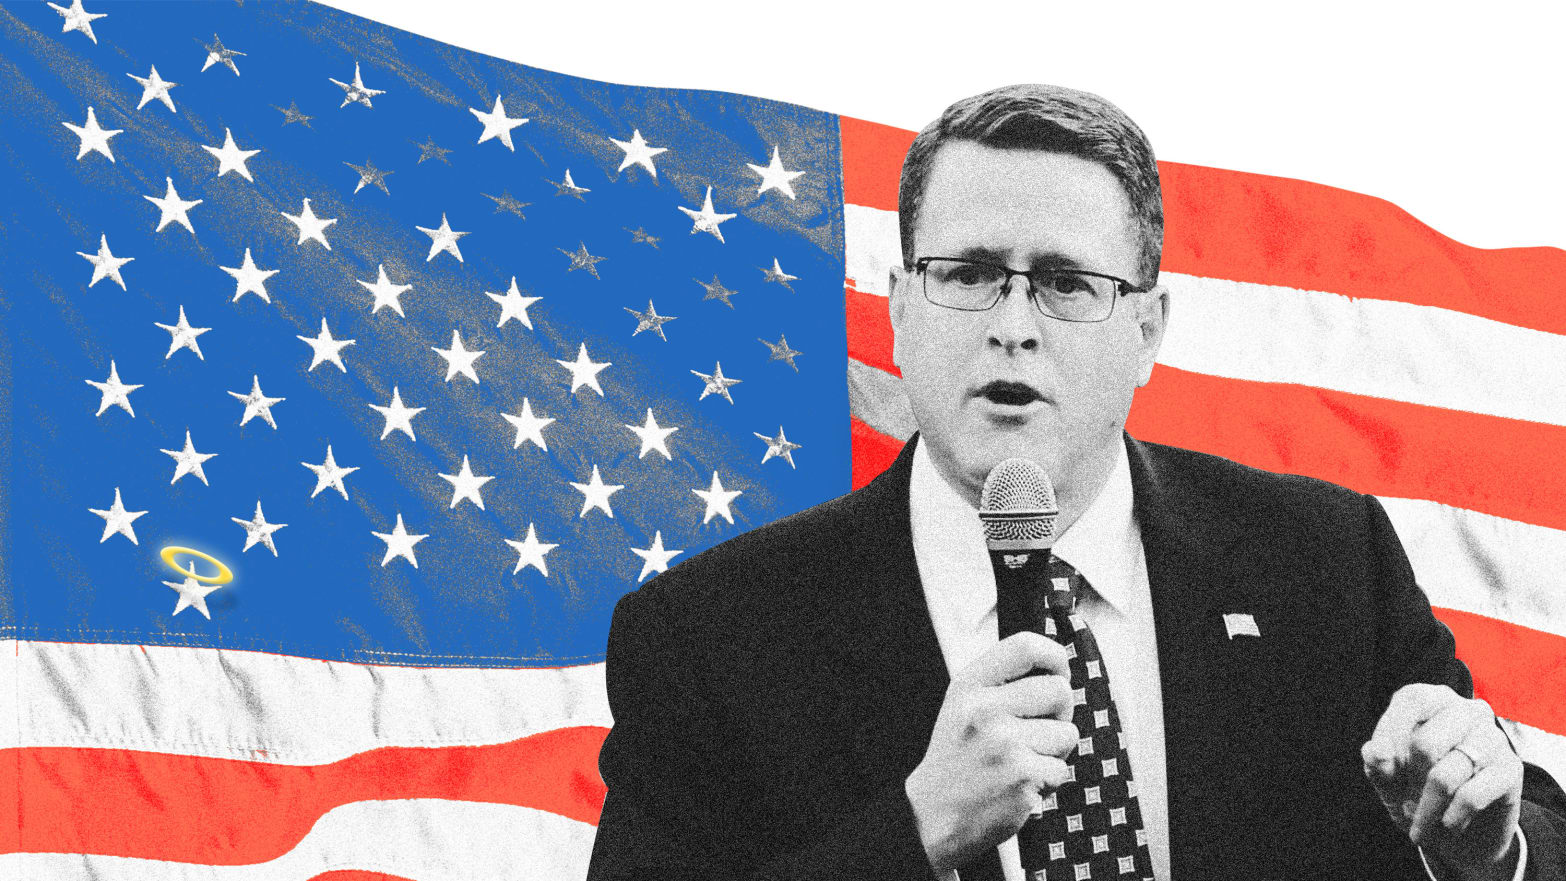 Matt Shea: Meet the GOP State Representative Plotting With Extremists and Preparing for a Christian Apocalypse